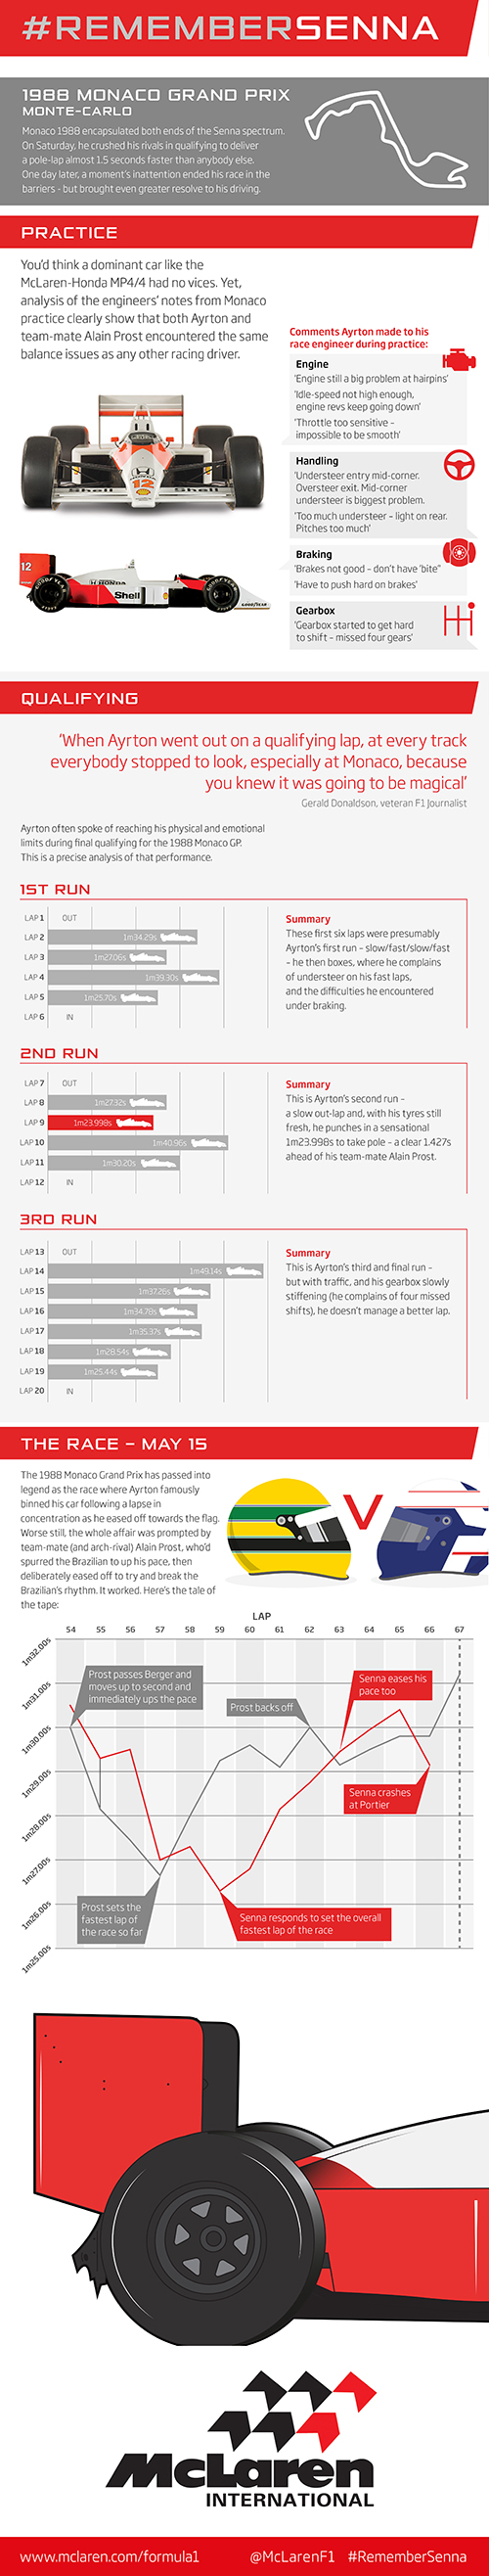 1993 Monaco Grand Prix [infographic] #RememberSenna